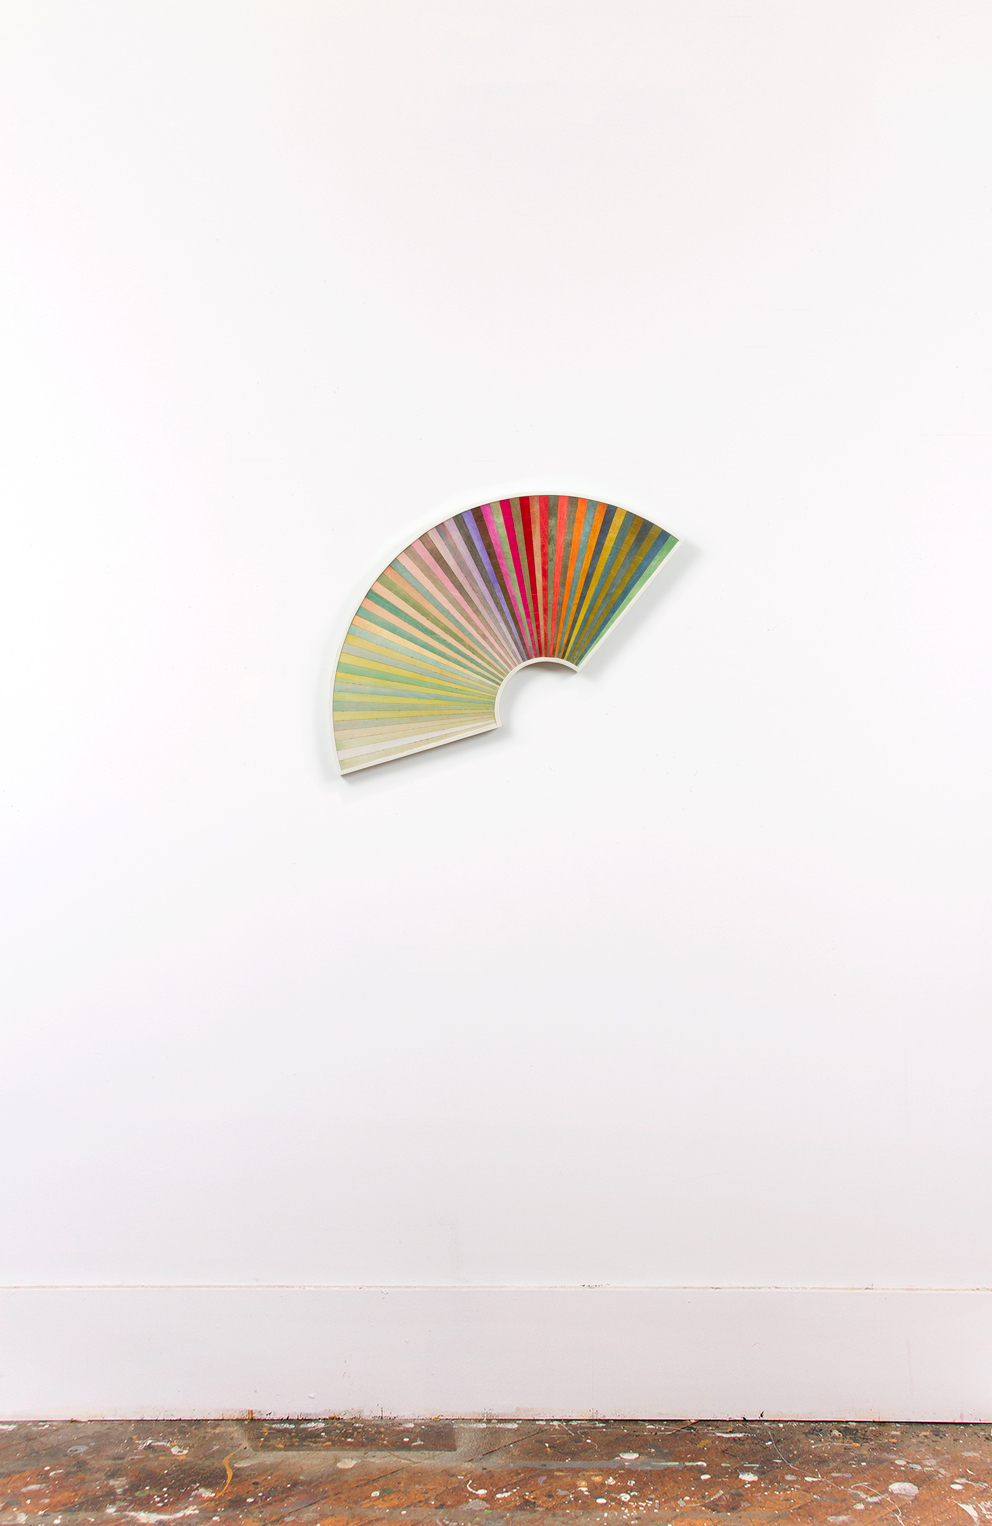 Dan Gunn, Fanning No. 1, 2013, dye and polyurethane on plywood, 28 x 36 inches